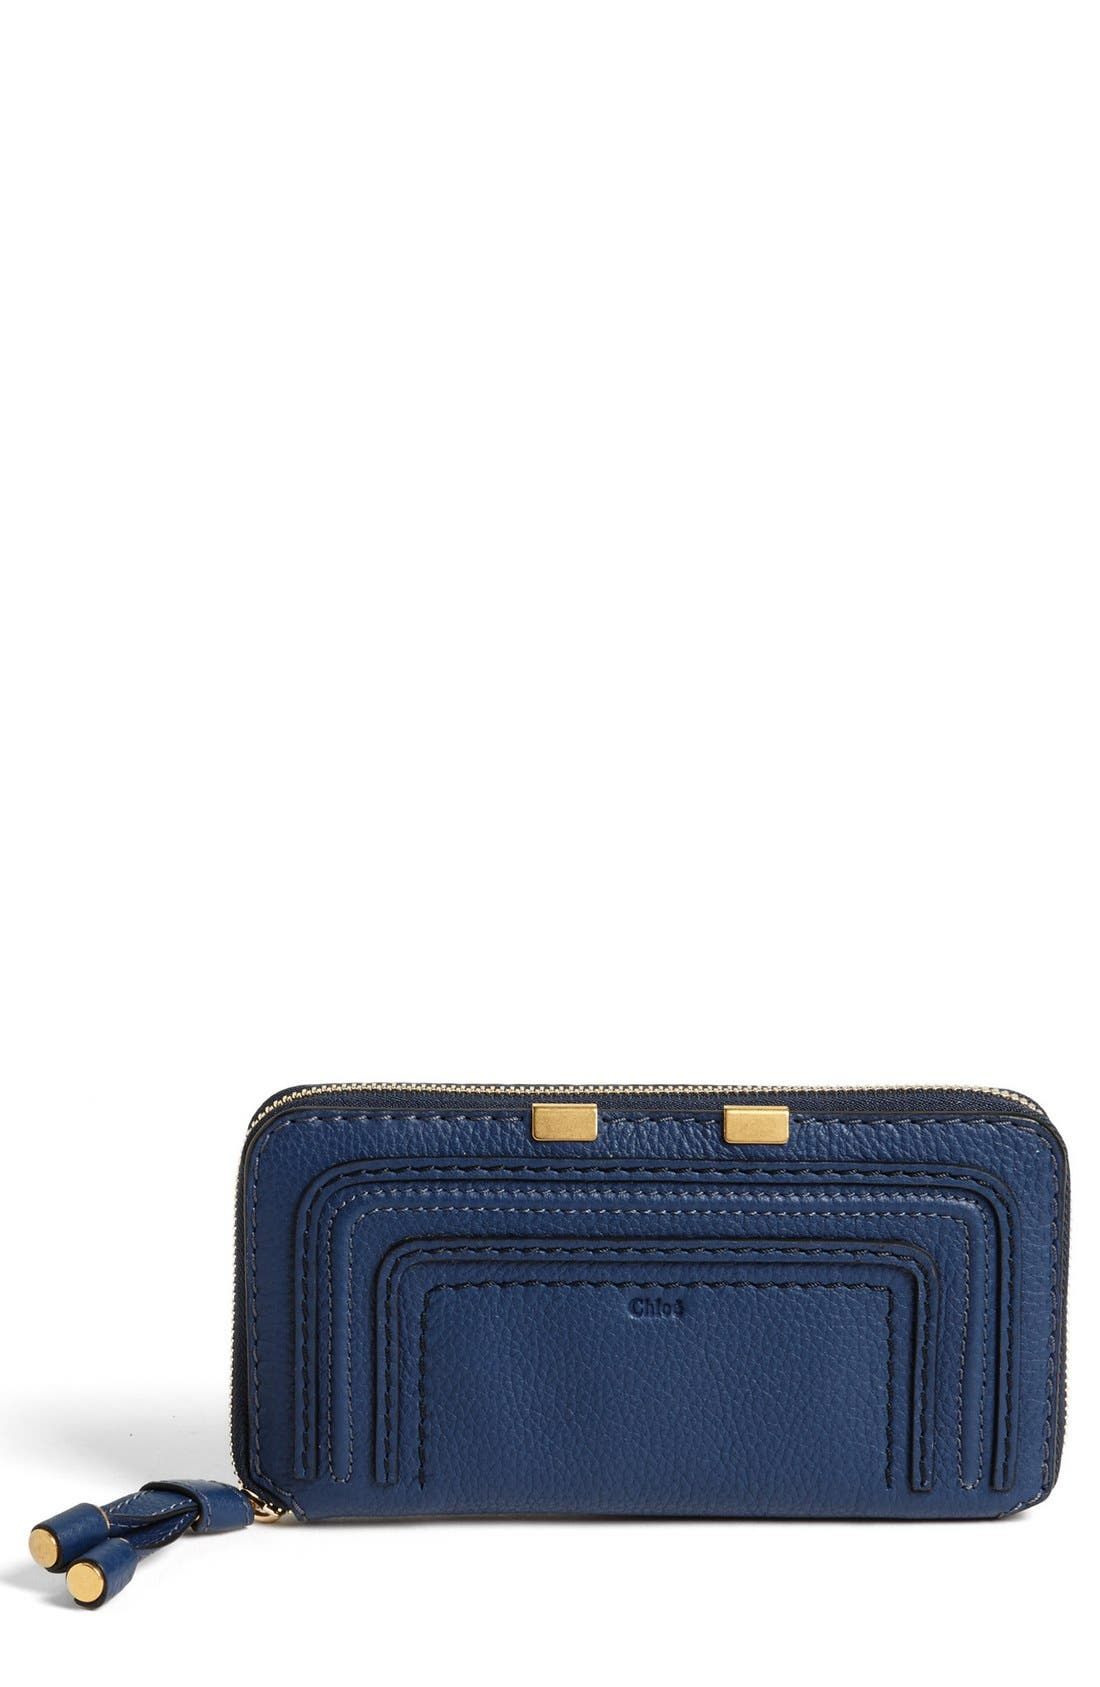 Main Image - Chloé 'Marcie - Long' Zip Around Wallet